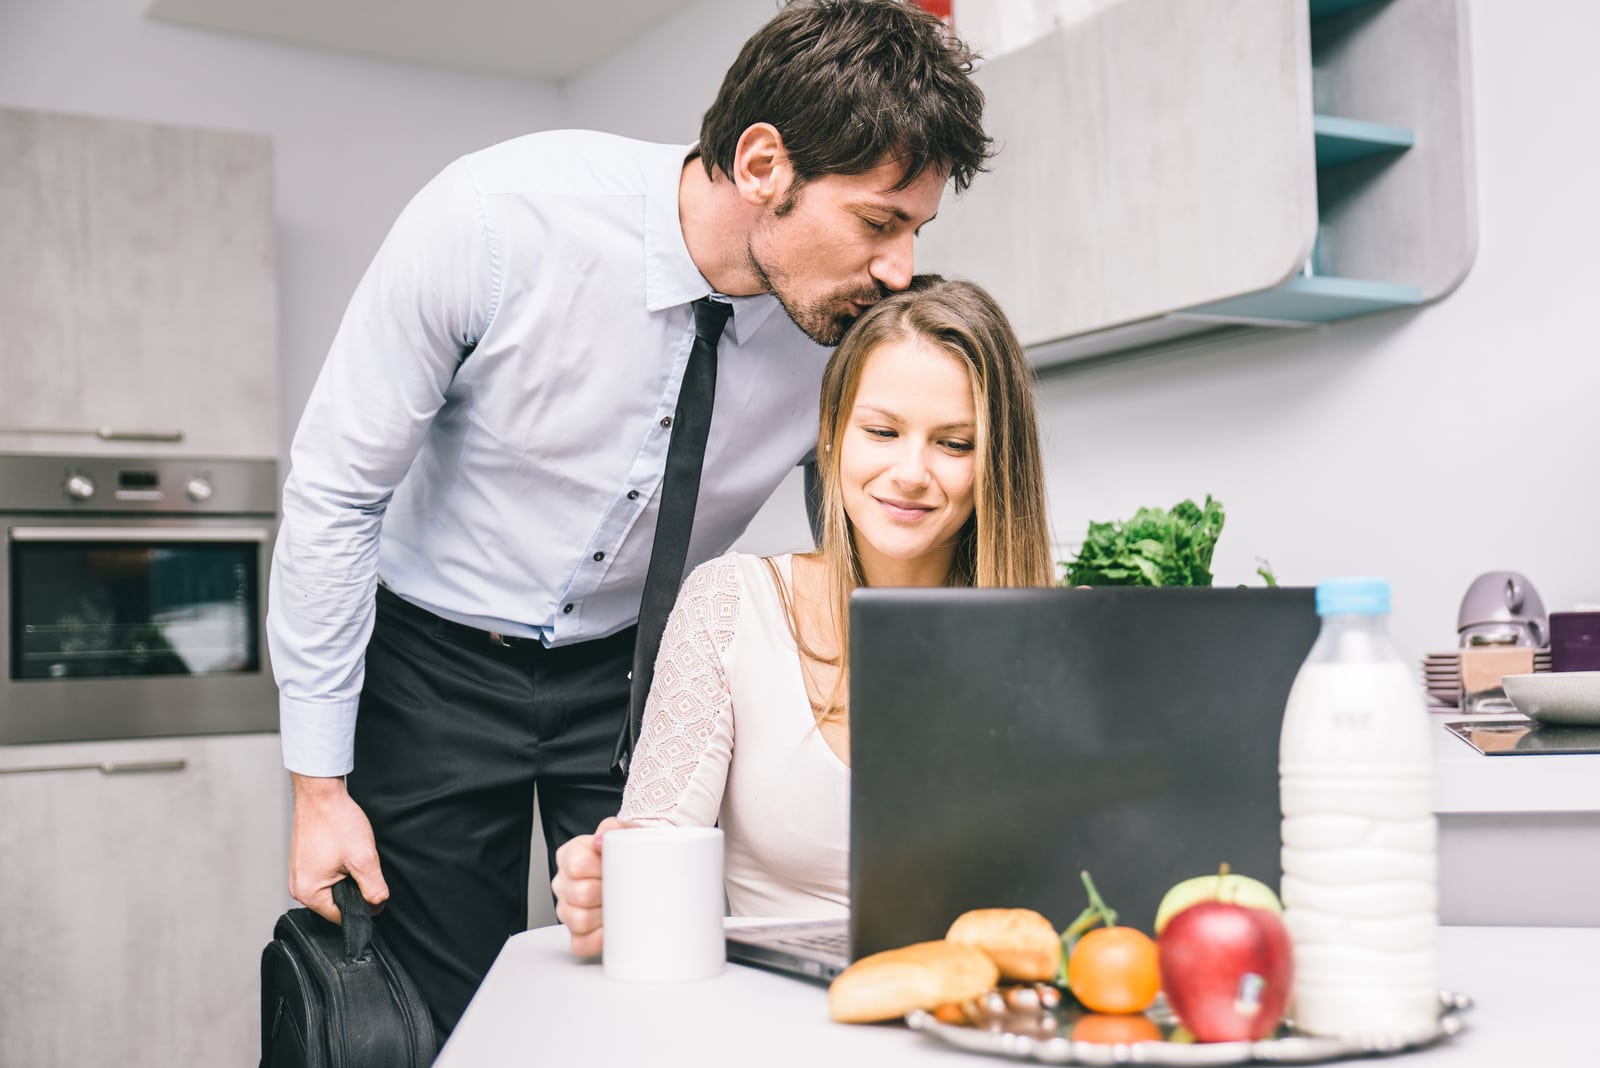 a man kisses a woman on the head while she sits behind a laptop